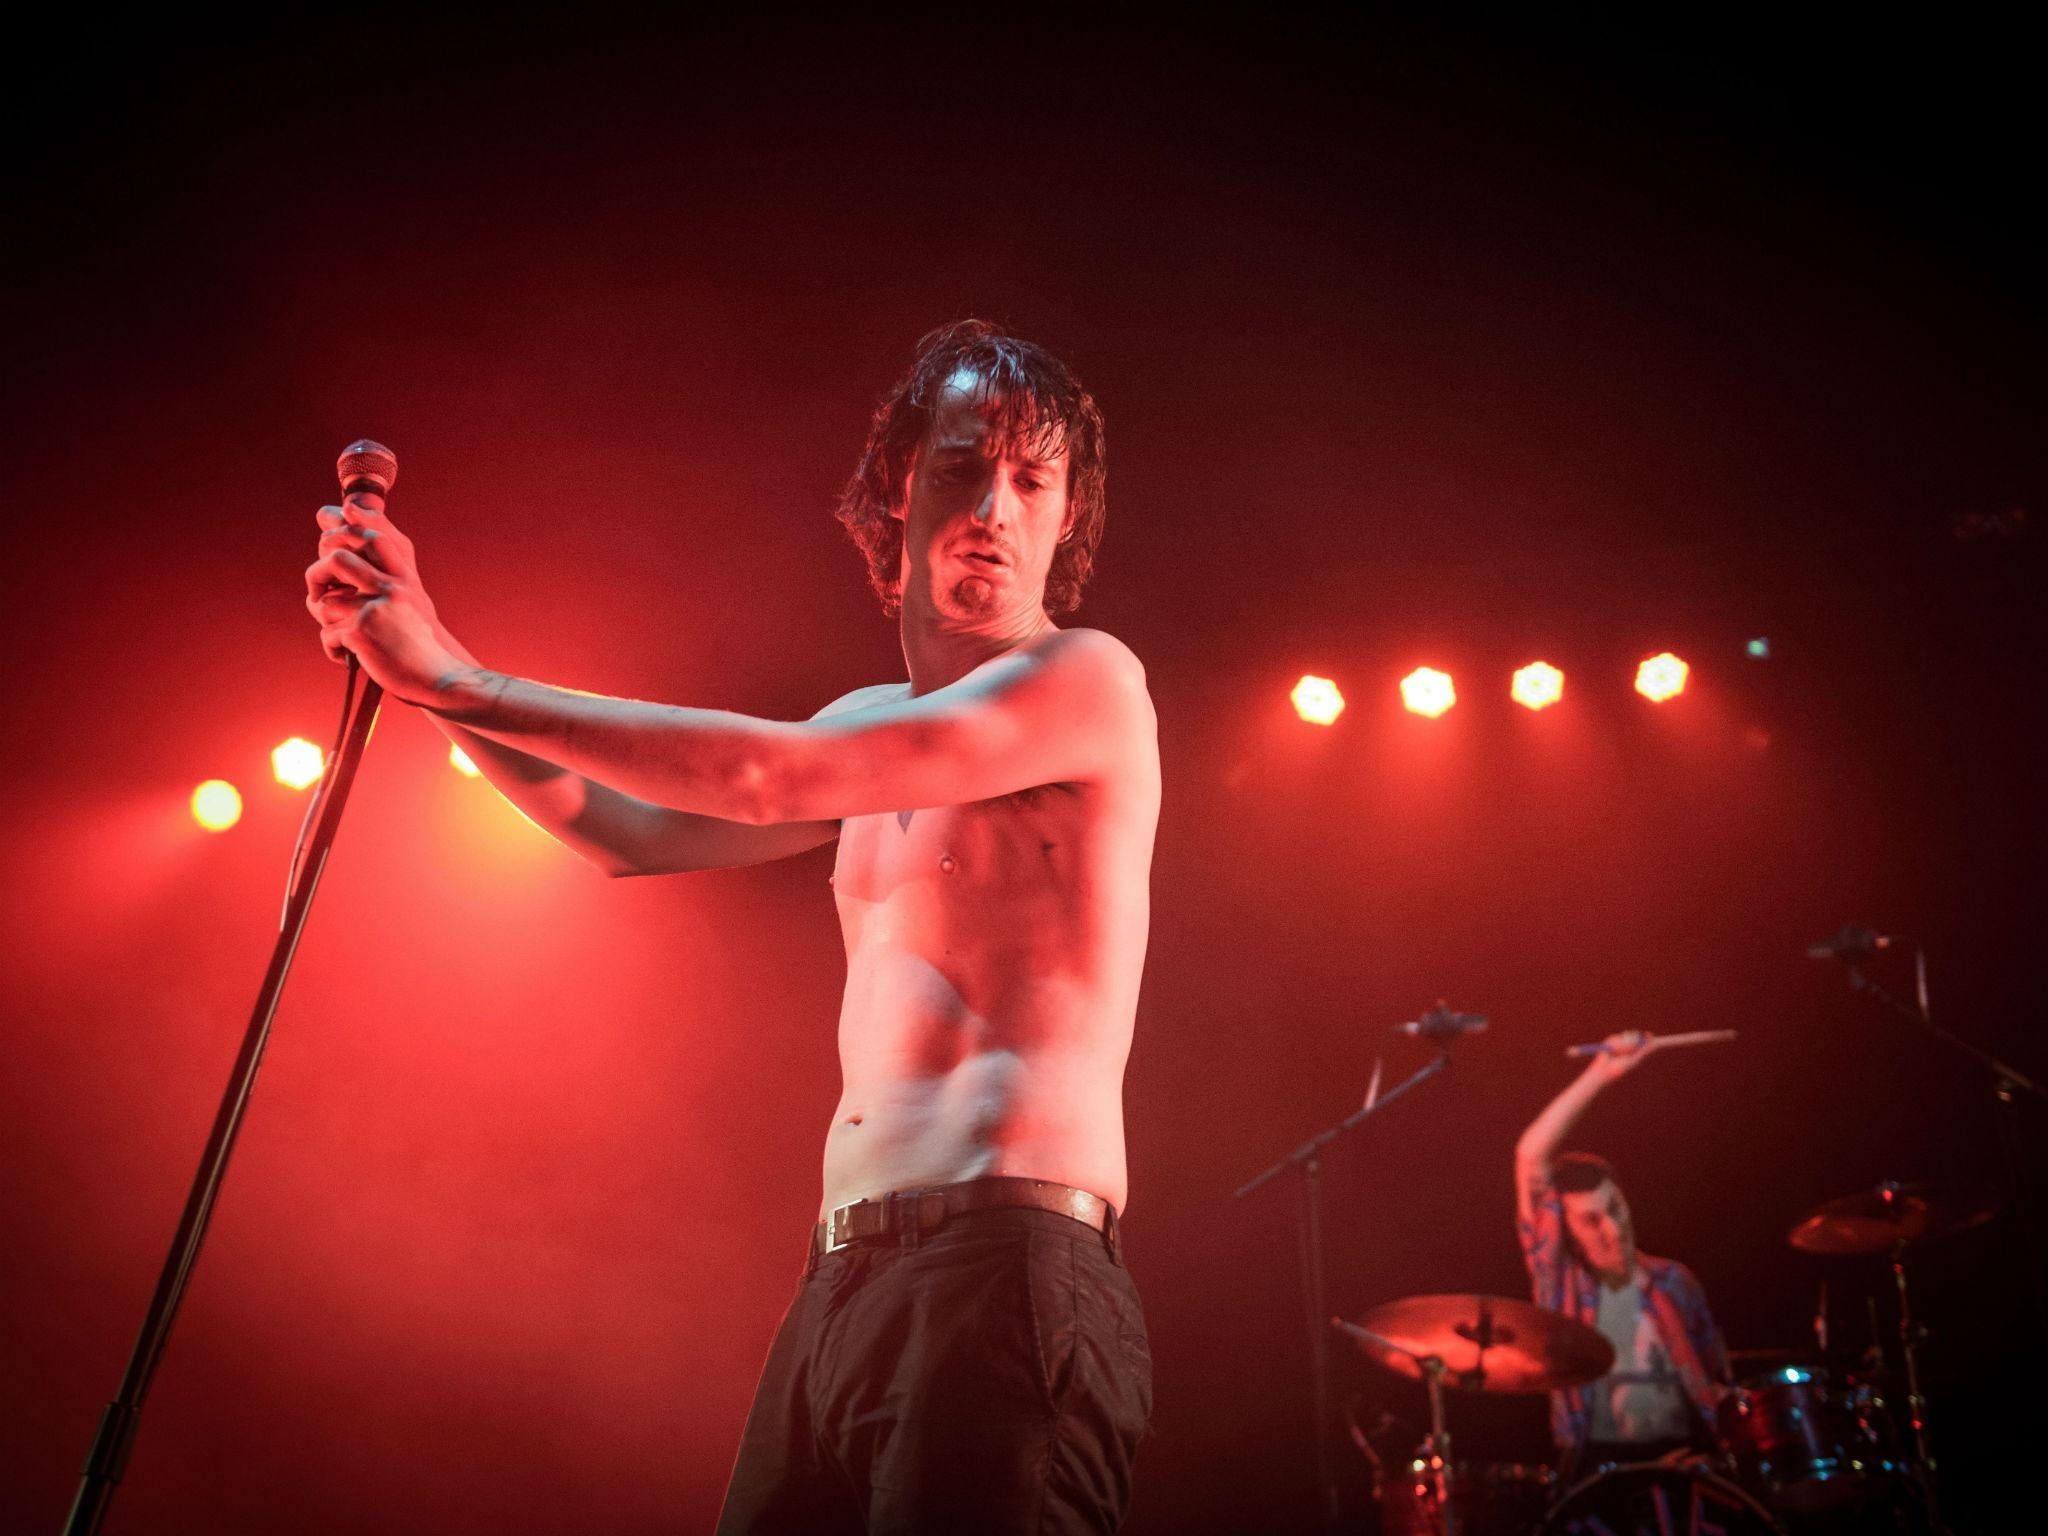 All Points East festival: Kate Tempest, Fat White Family and Kojaque added to lineup